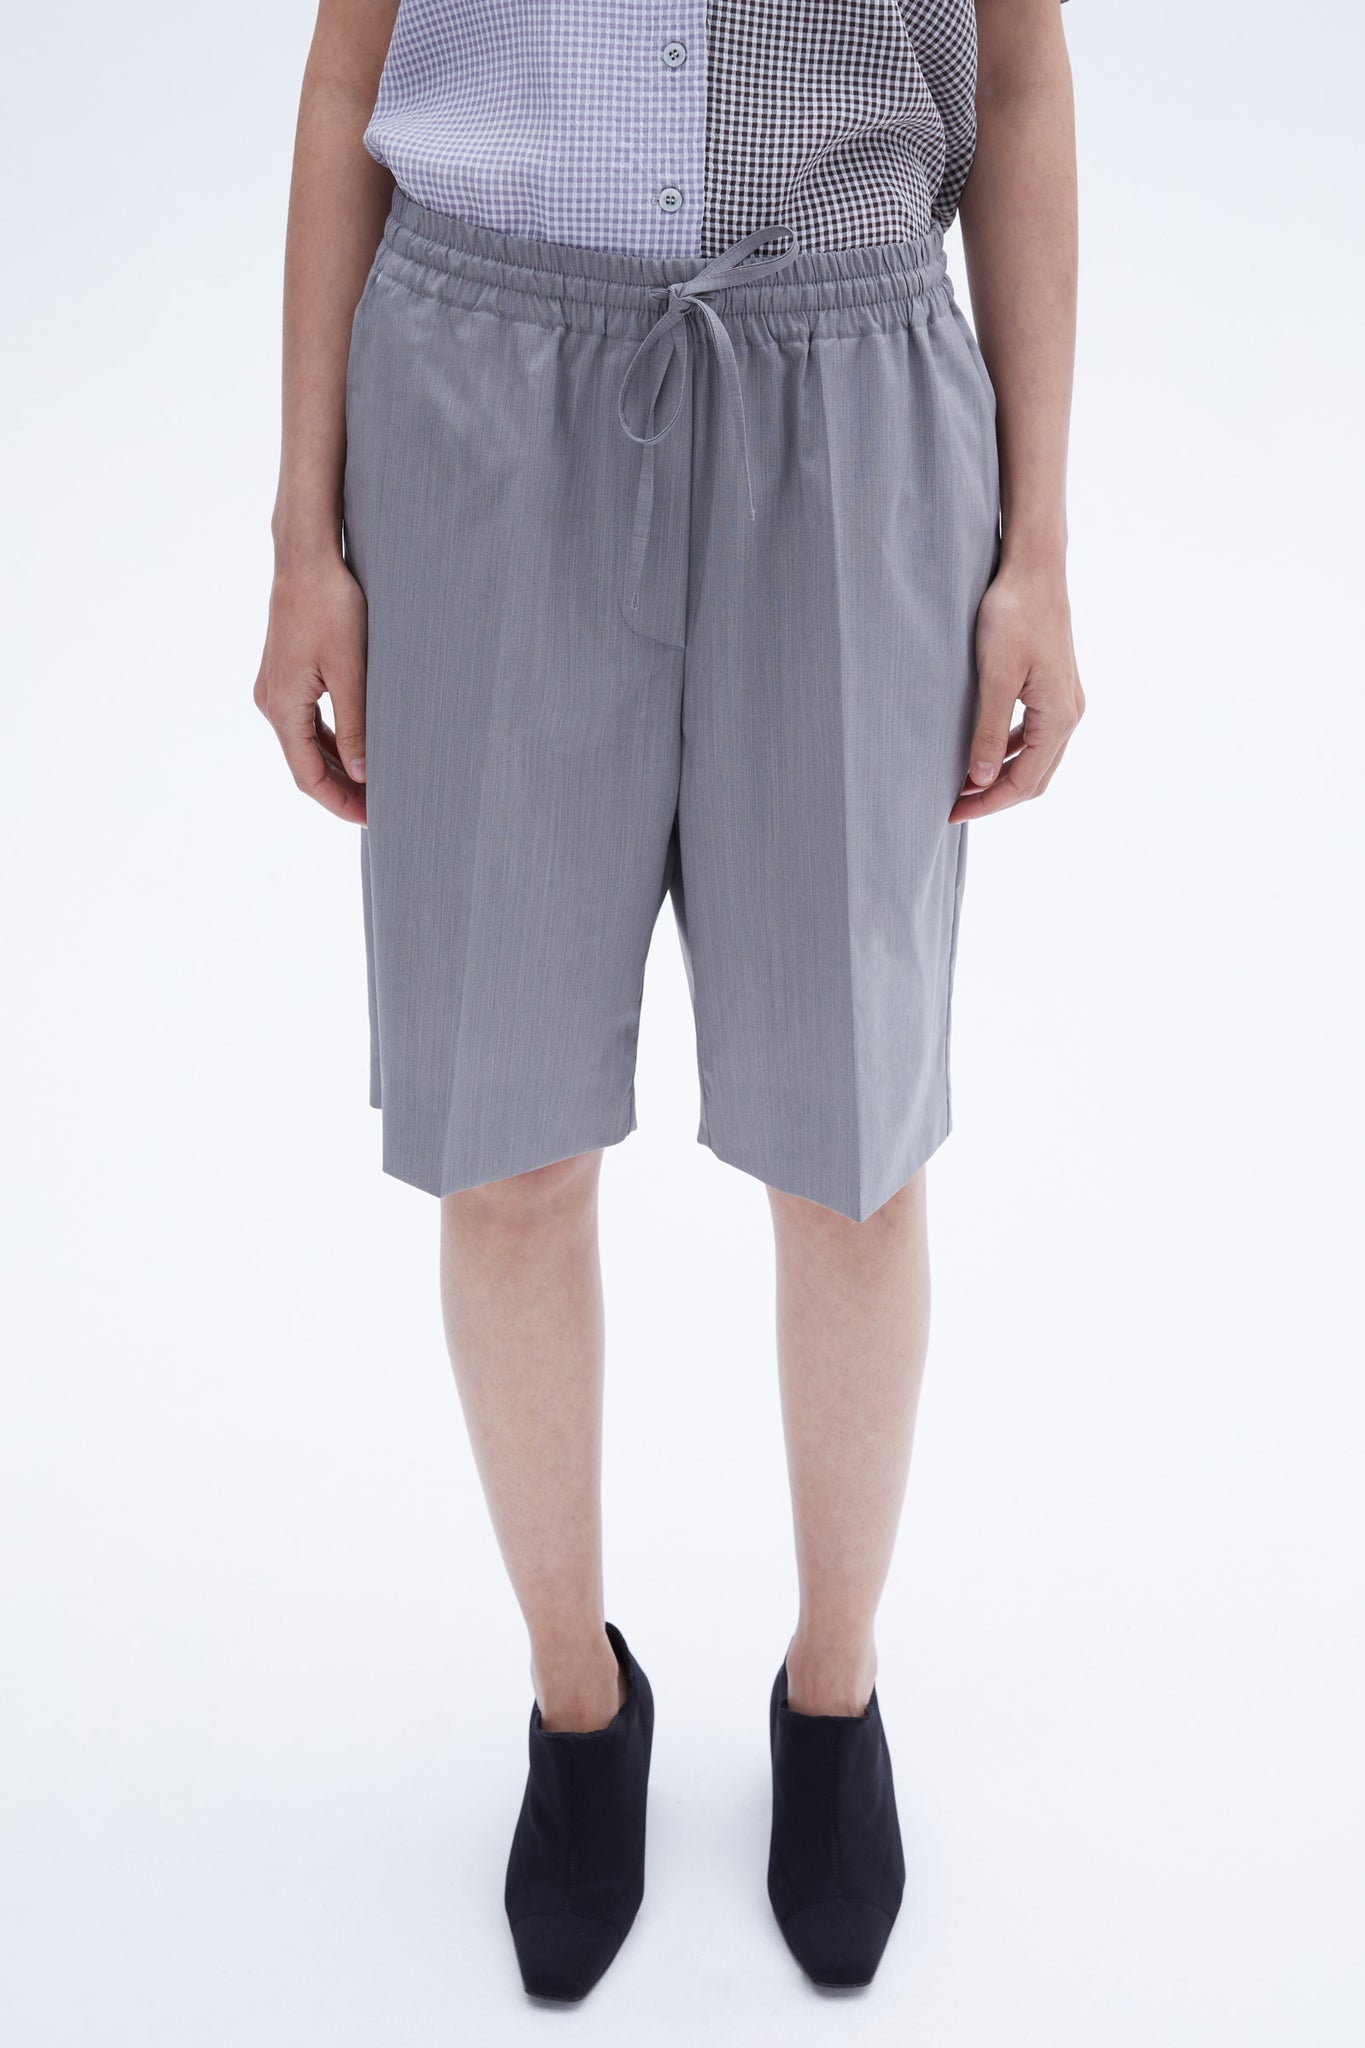 Darko shorts grey